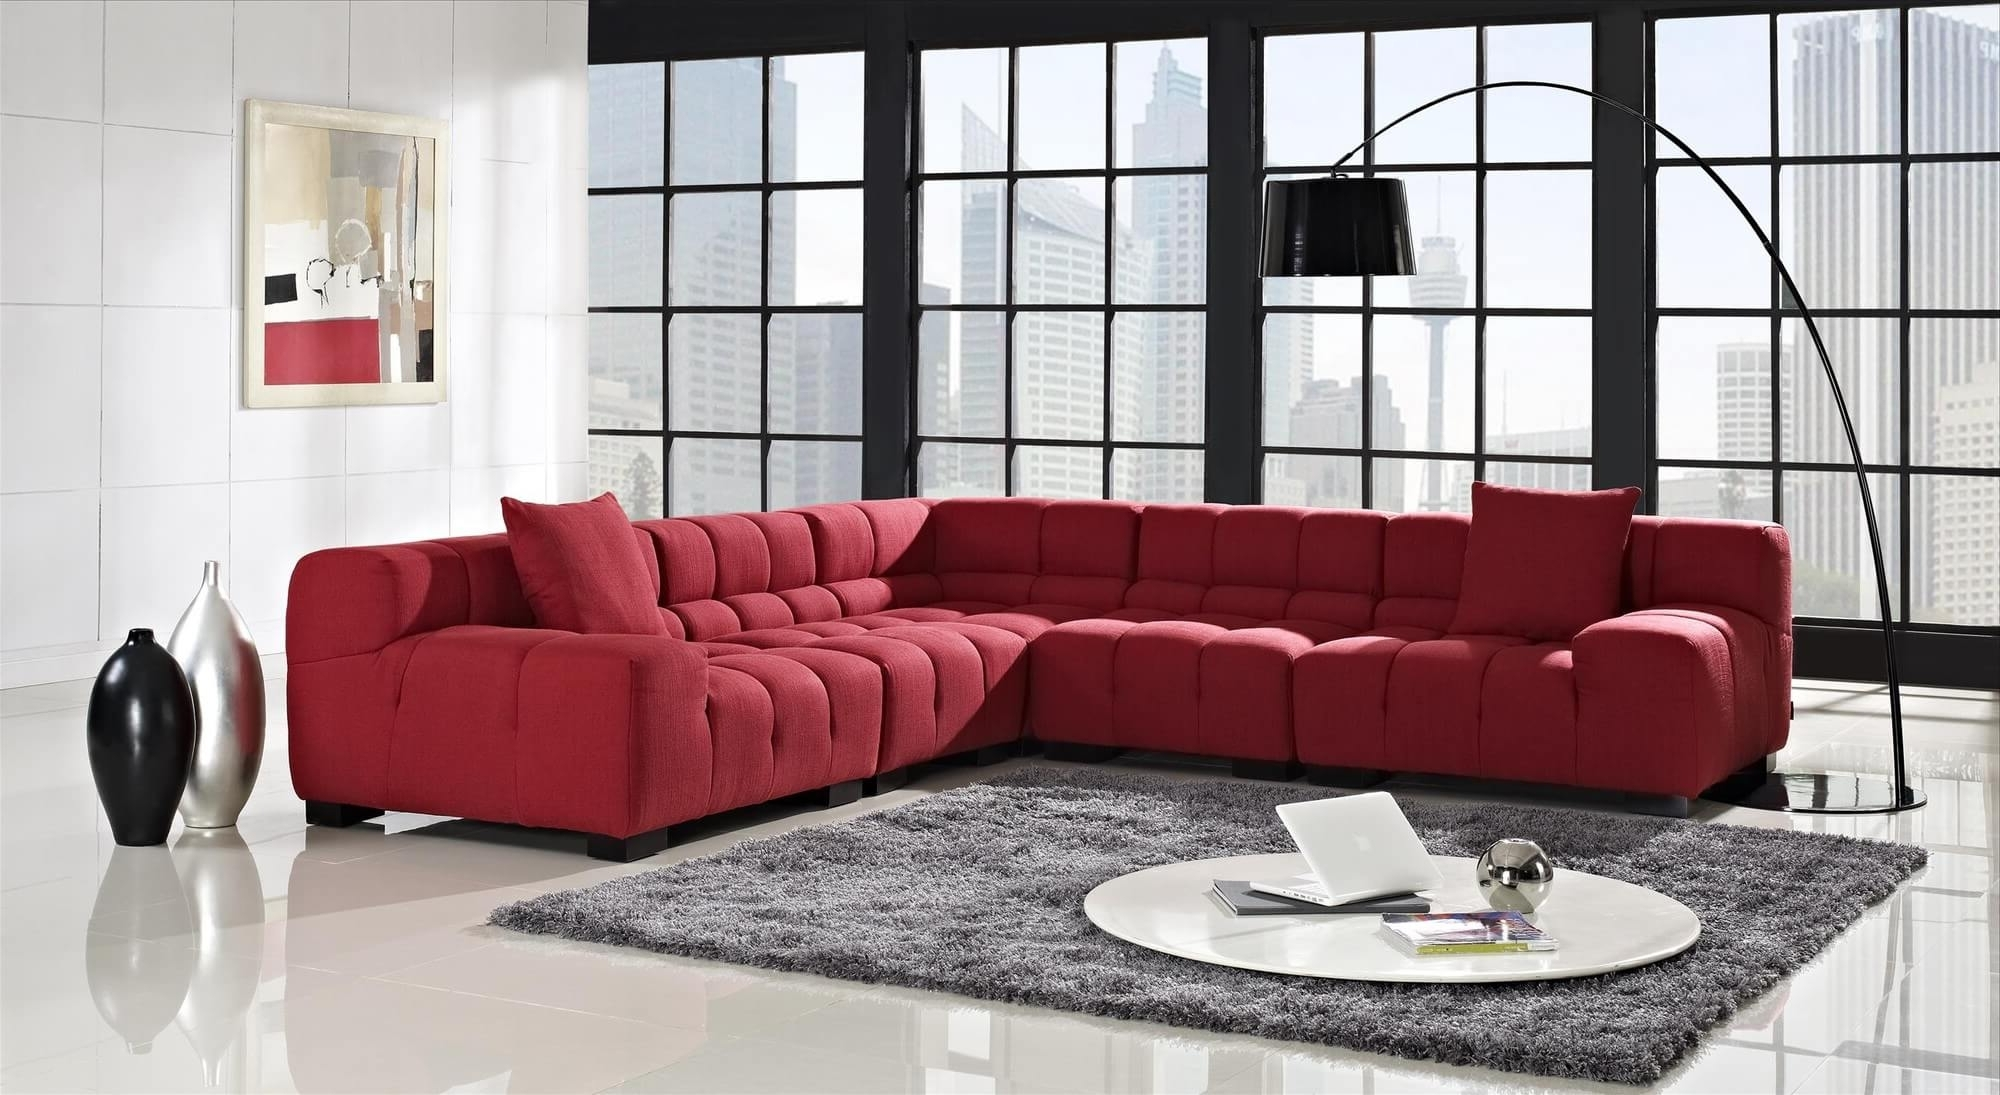 Well Known Red Sectional Sofas Intended For Amazing Red Sectional Sofa 14 About Remodel Office Sofa Ideas With (View 11 of 20)